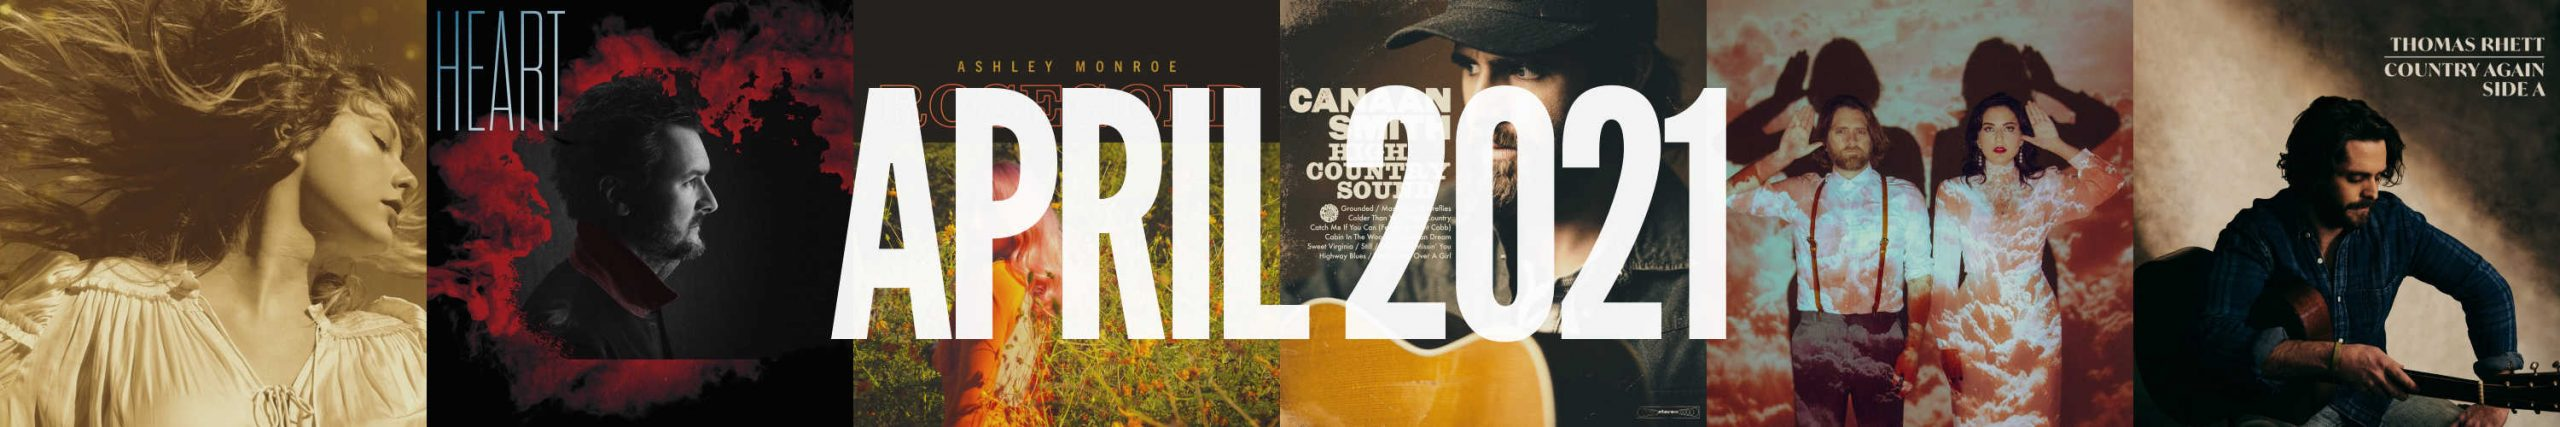 April 2021 New Country Album Releases